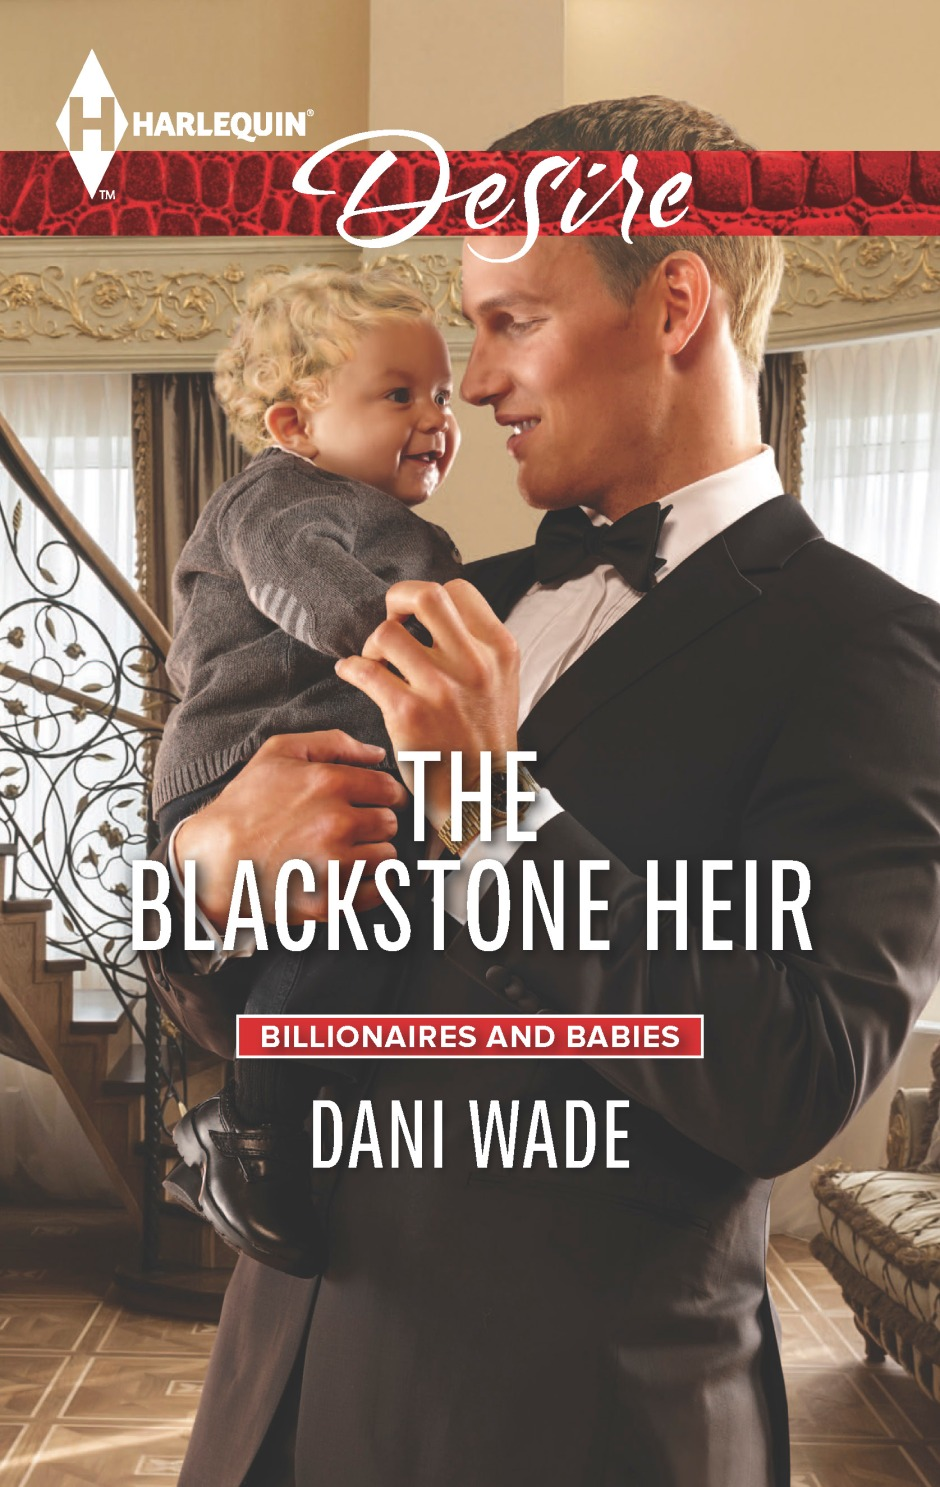 Mill Town Millionaires, Billionaires and Babies, Blackstone Heir, Dani Wade